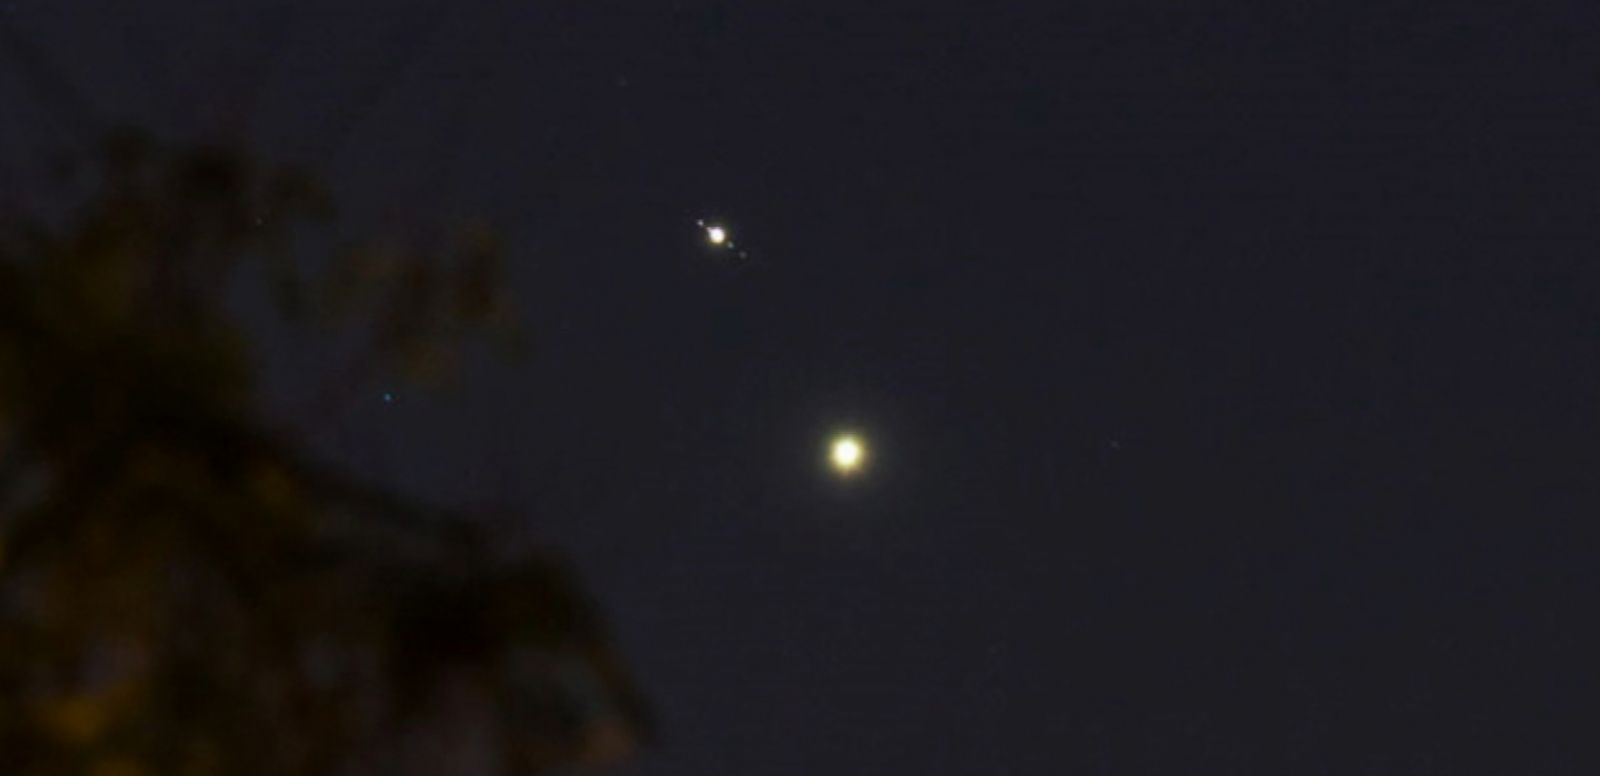 VIDEO: The planets appeared to glide closer together in what's called an astronomical conjunction.